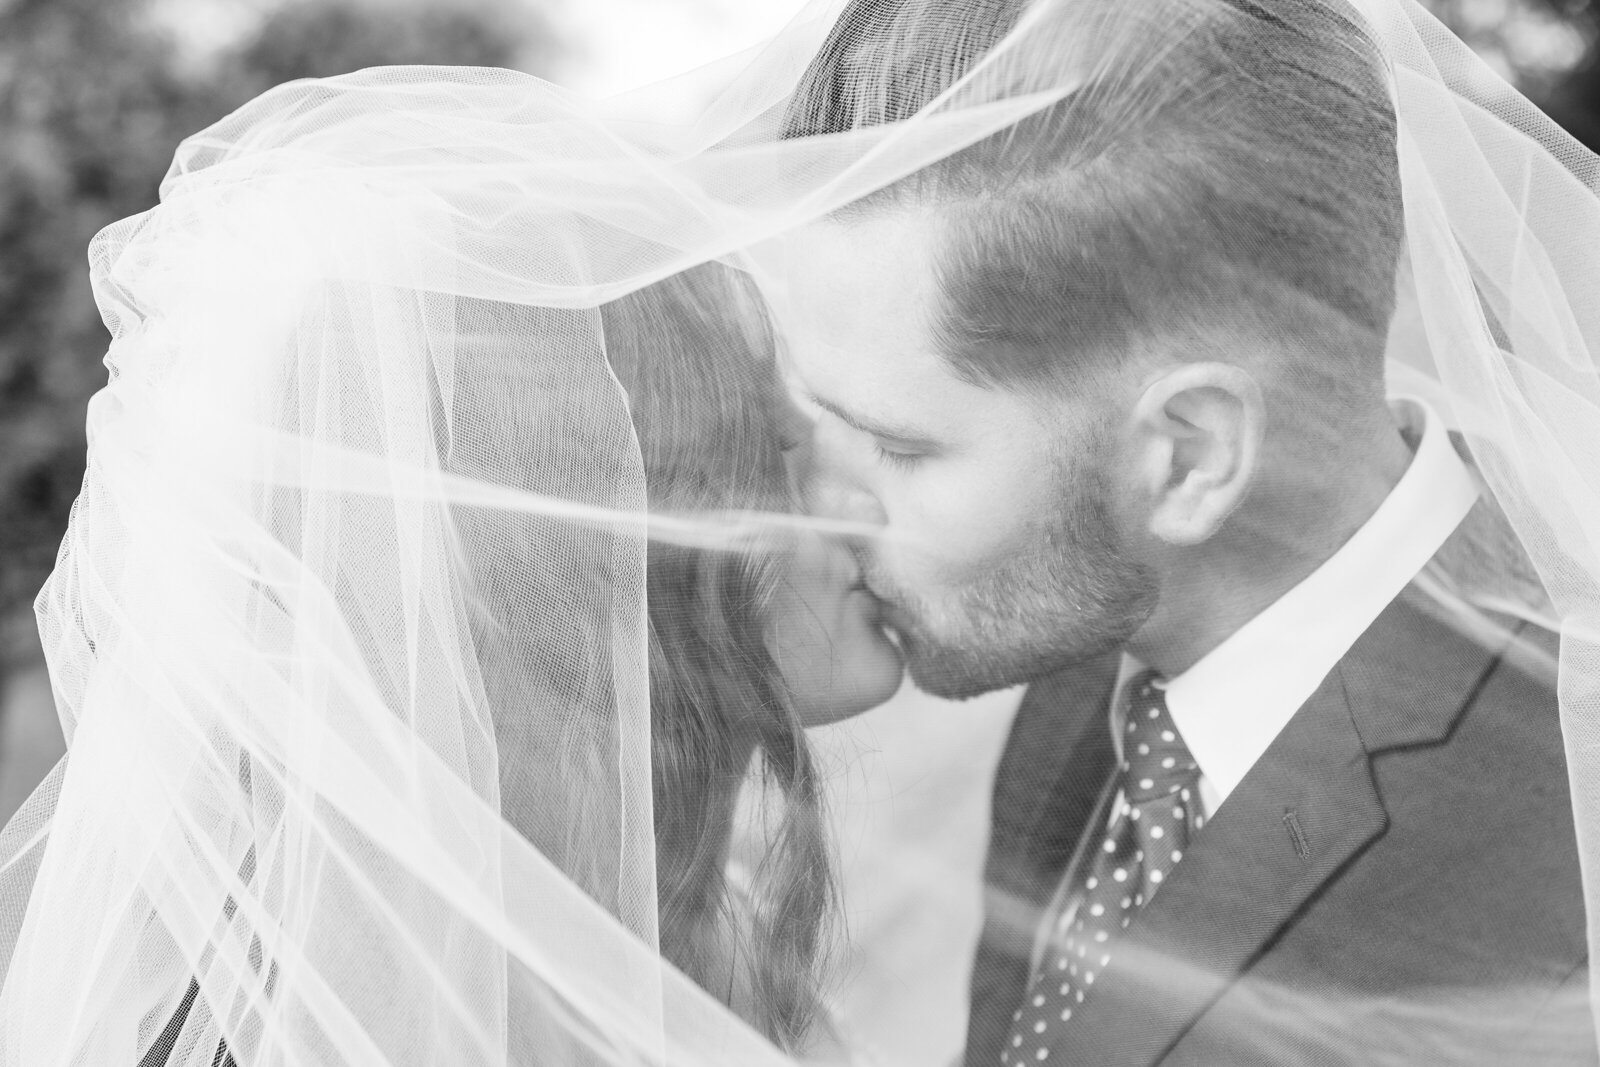 Newlyweds-kiss-under-the-veil-at-their-st-mary's-golf-club-wedding